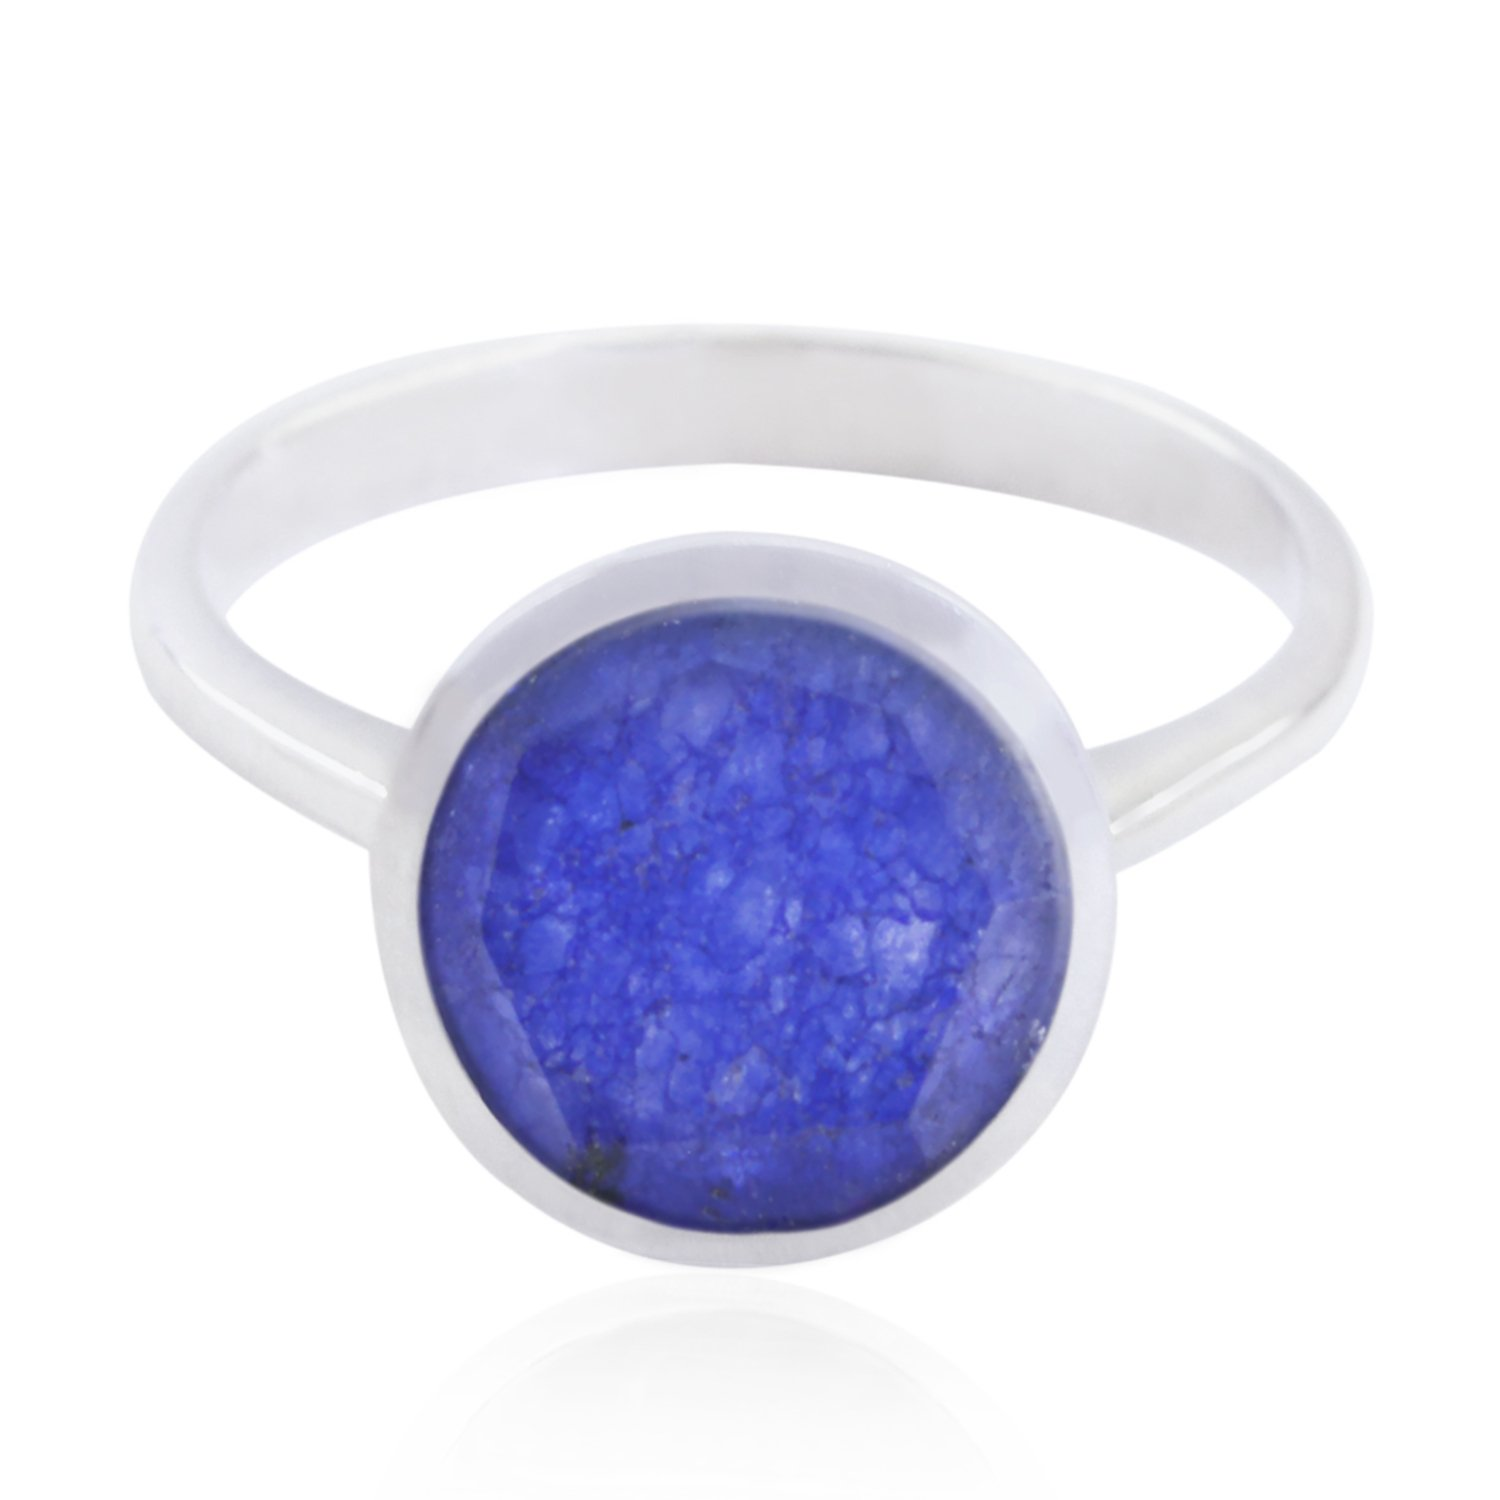 Designer Jewelry Highest Seller Gift for Graduation Handmade Rings 925 Silver Blue Indiansappire Good Gemstones Ring Good Gemstones Round Faceted Indiansappire Rings